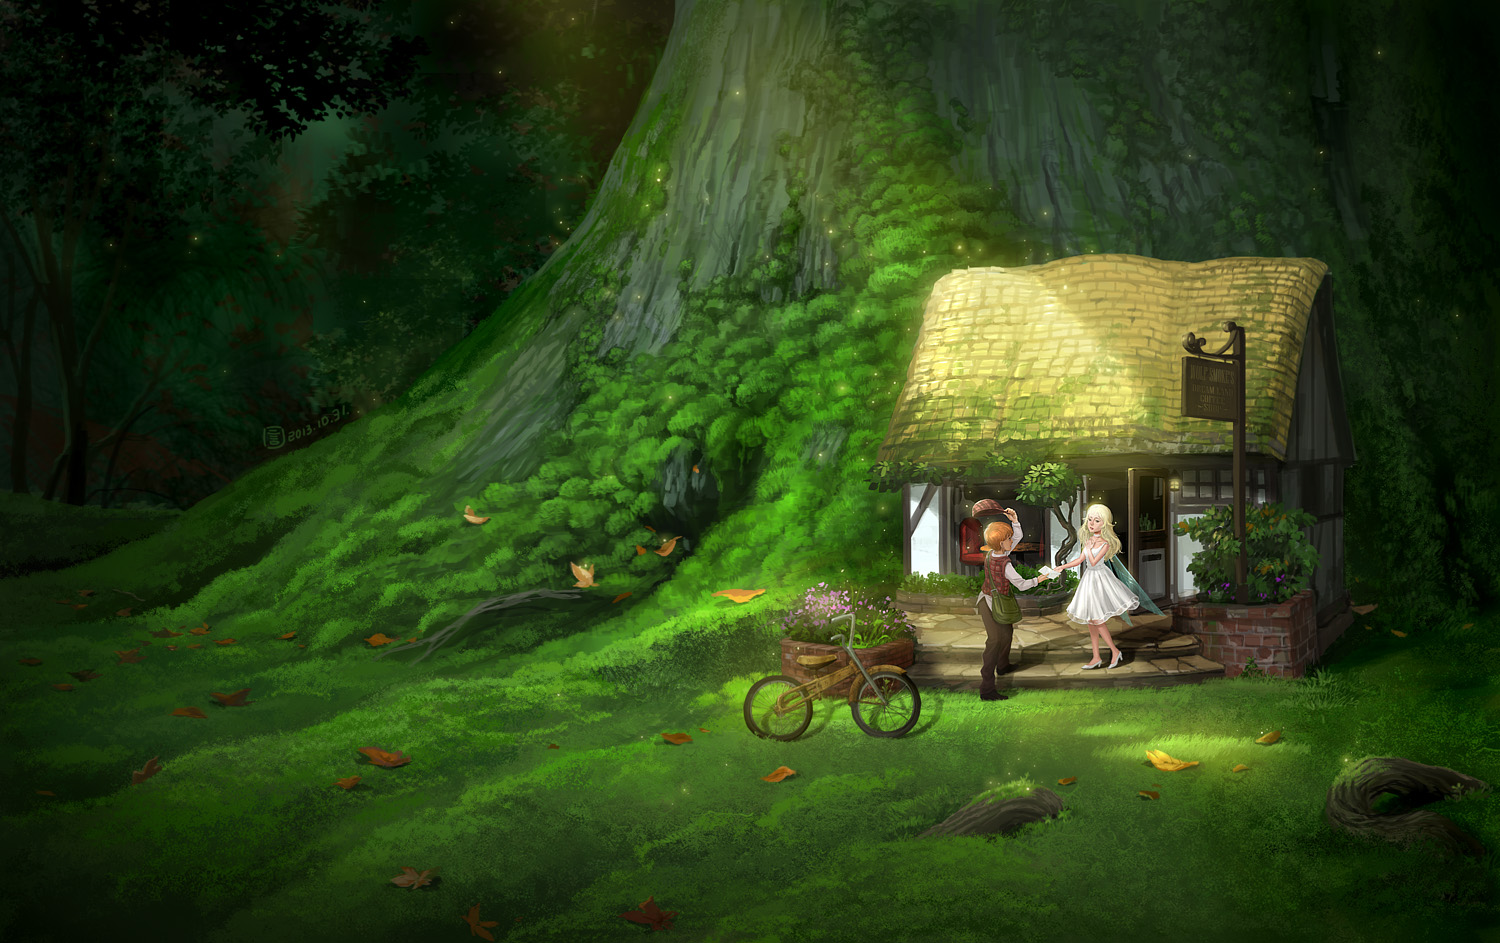 Bicycle Blonde Hair Dress Fairy Flowers Forest Grass Hat